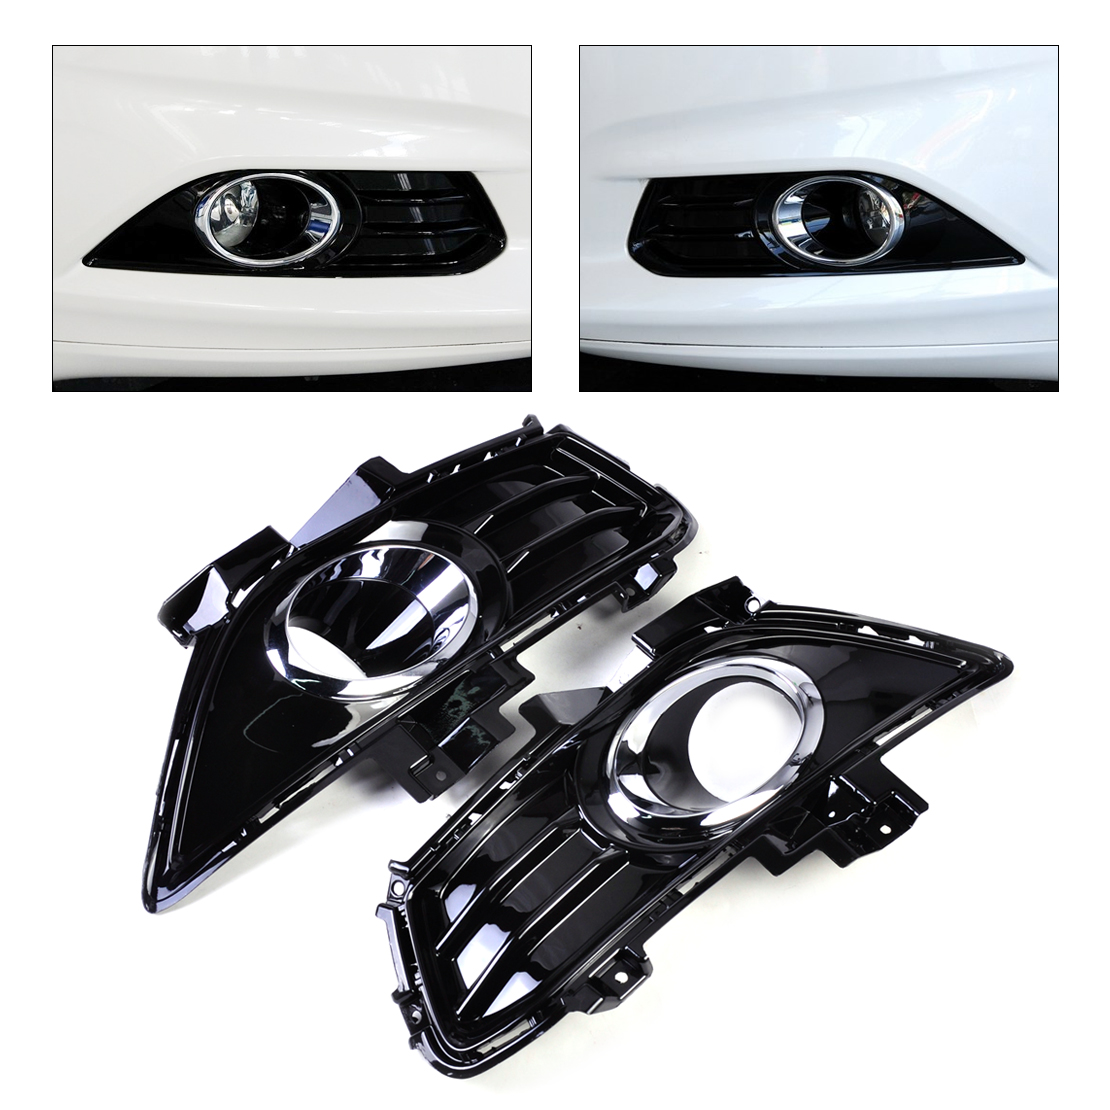 Dwcx ds73 19952caw sl666 gloss fog light lamp grill grille cover for ford fusion